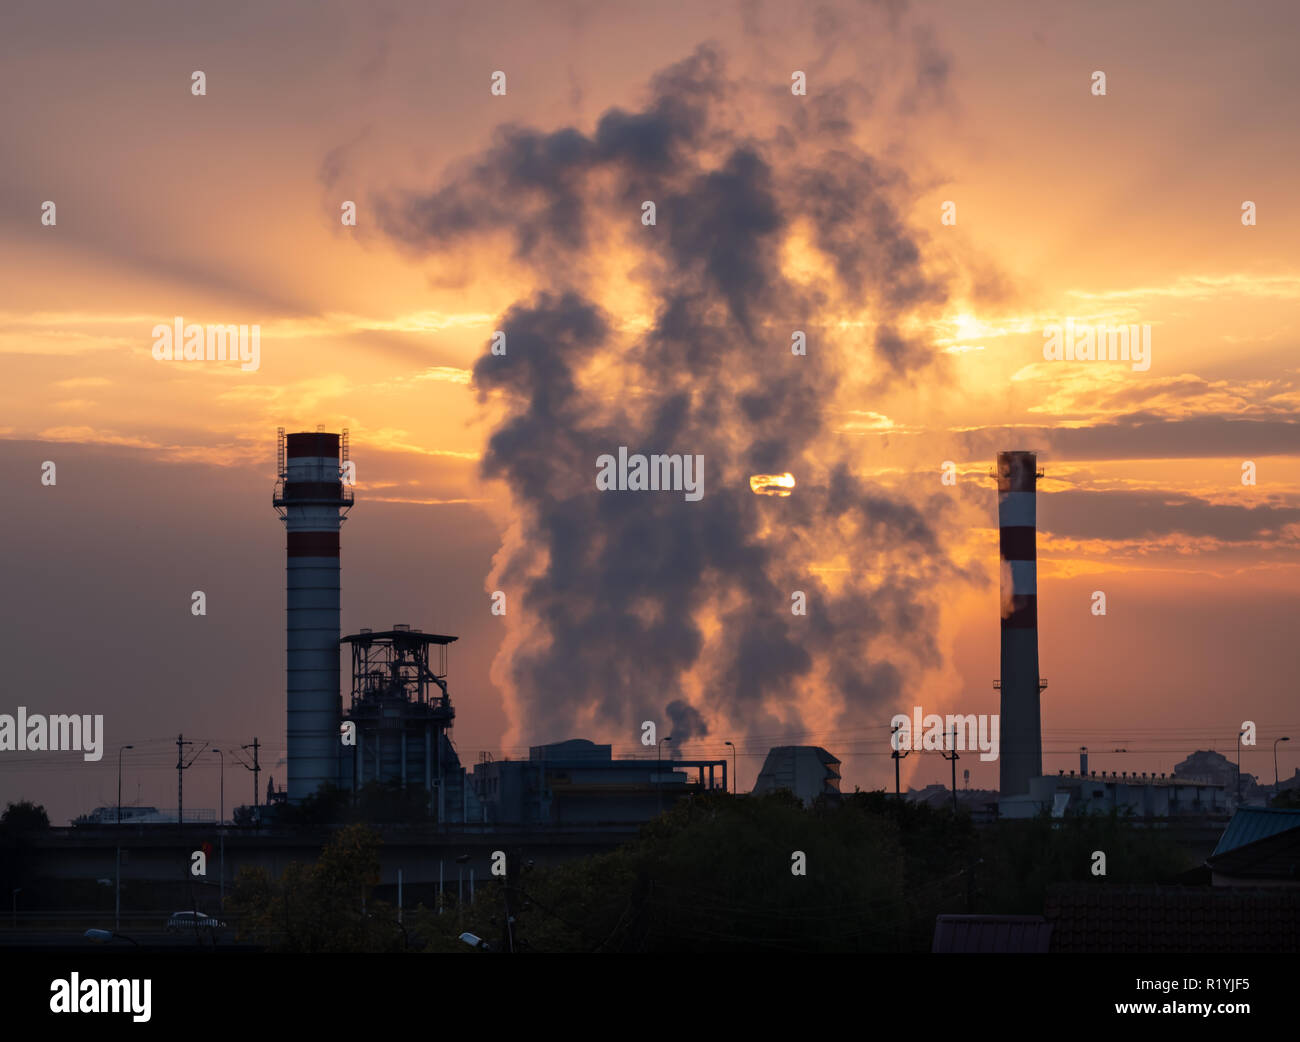 sunrise-over-industrial-factory-with-smoke-rising-between-smokestacks-behind-smoke-sun-and-orange-clouds-are-visible-R1YJF5.jpg